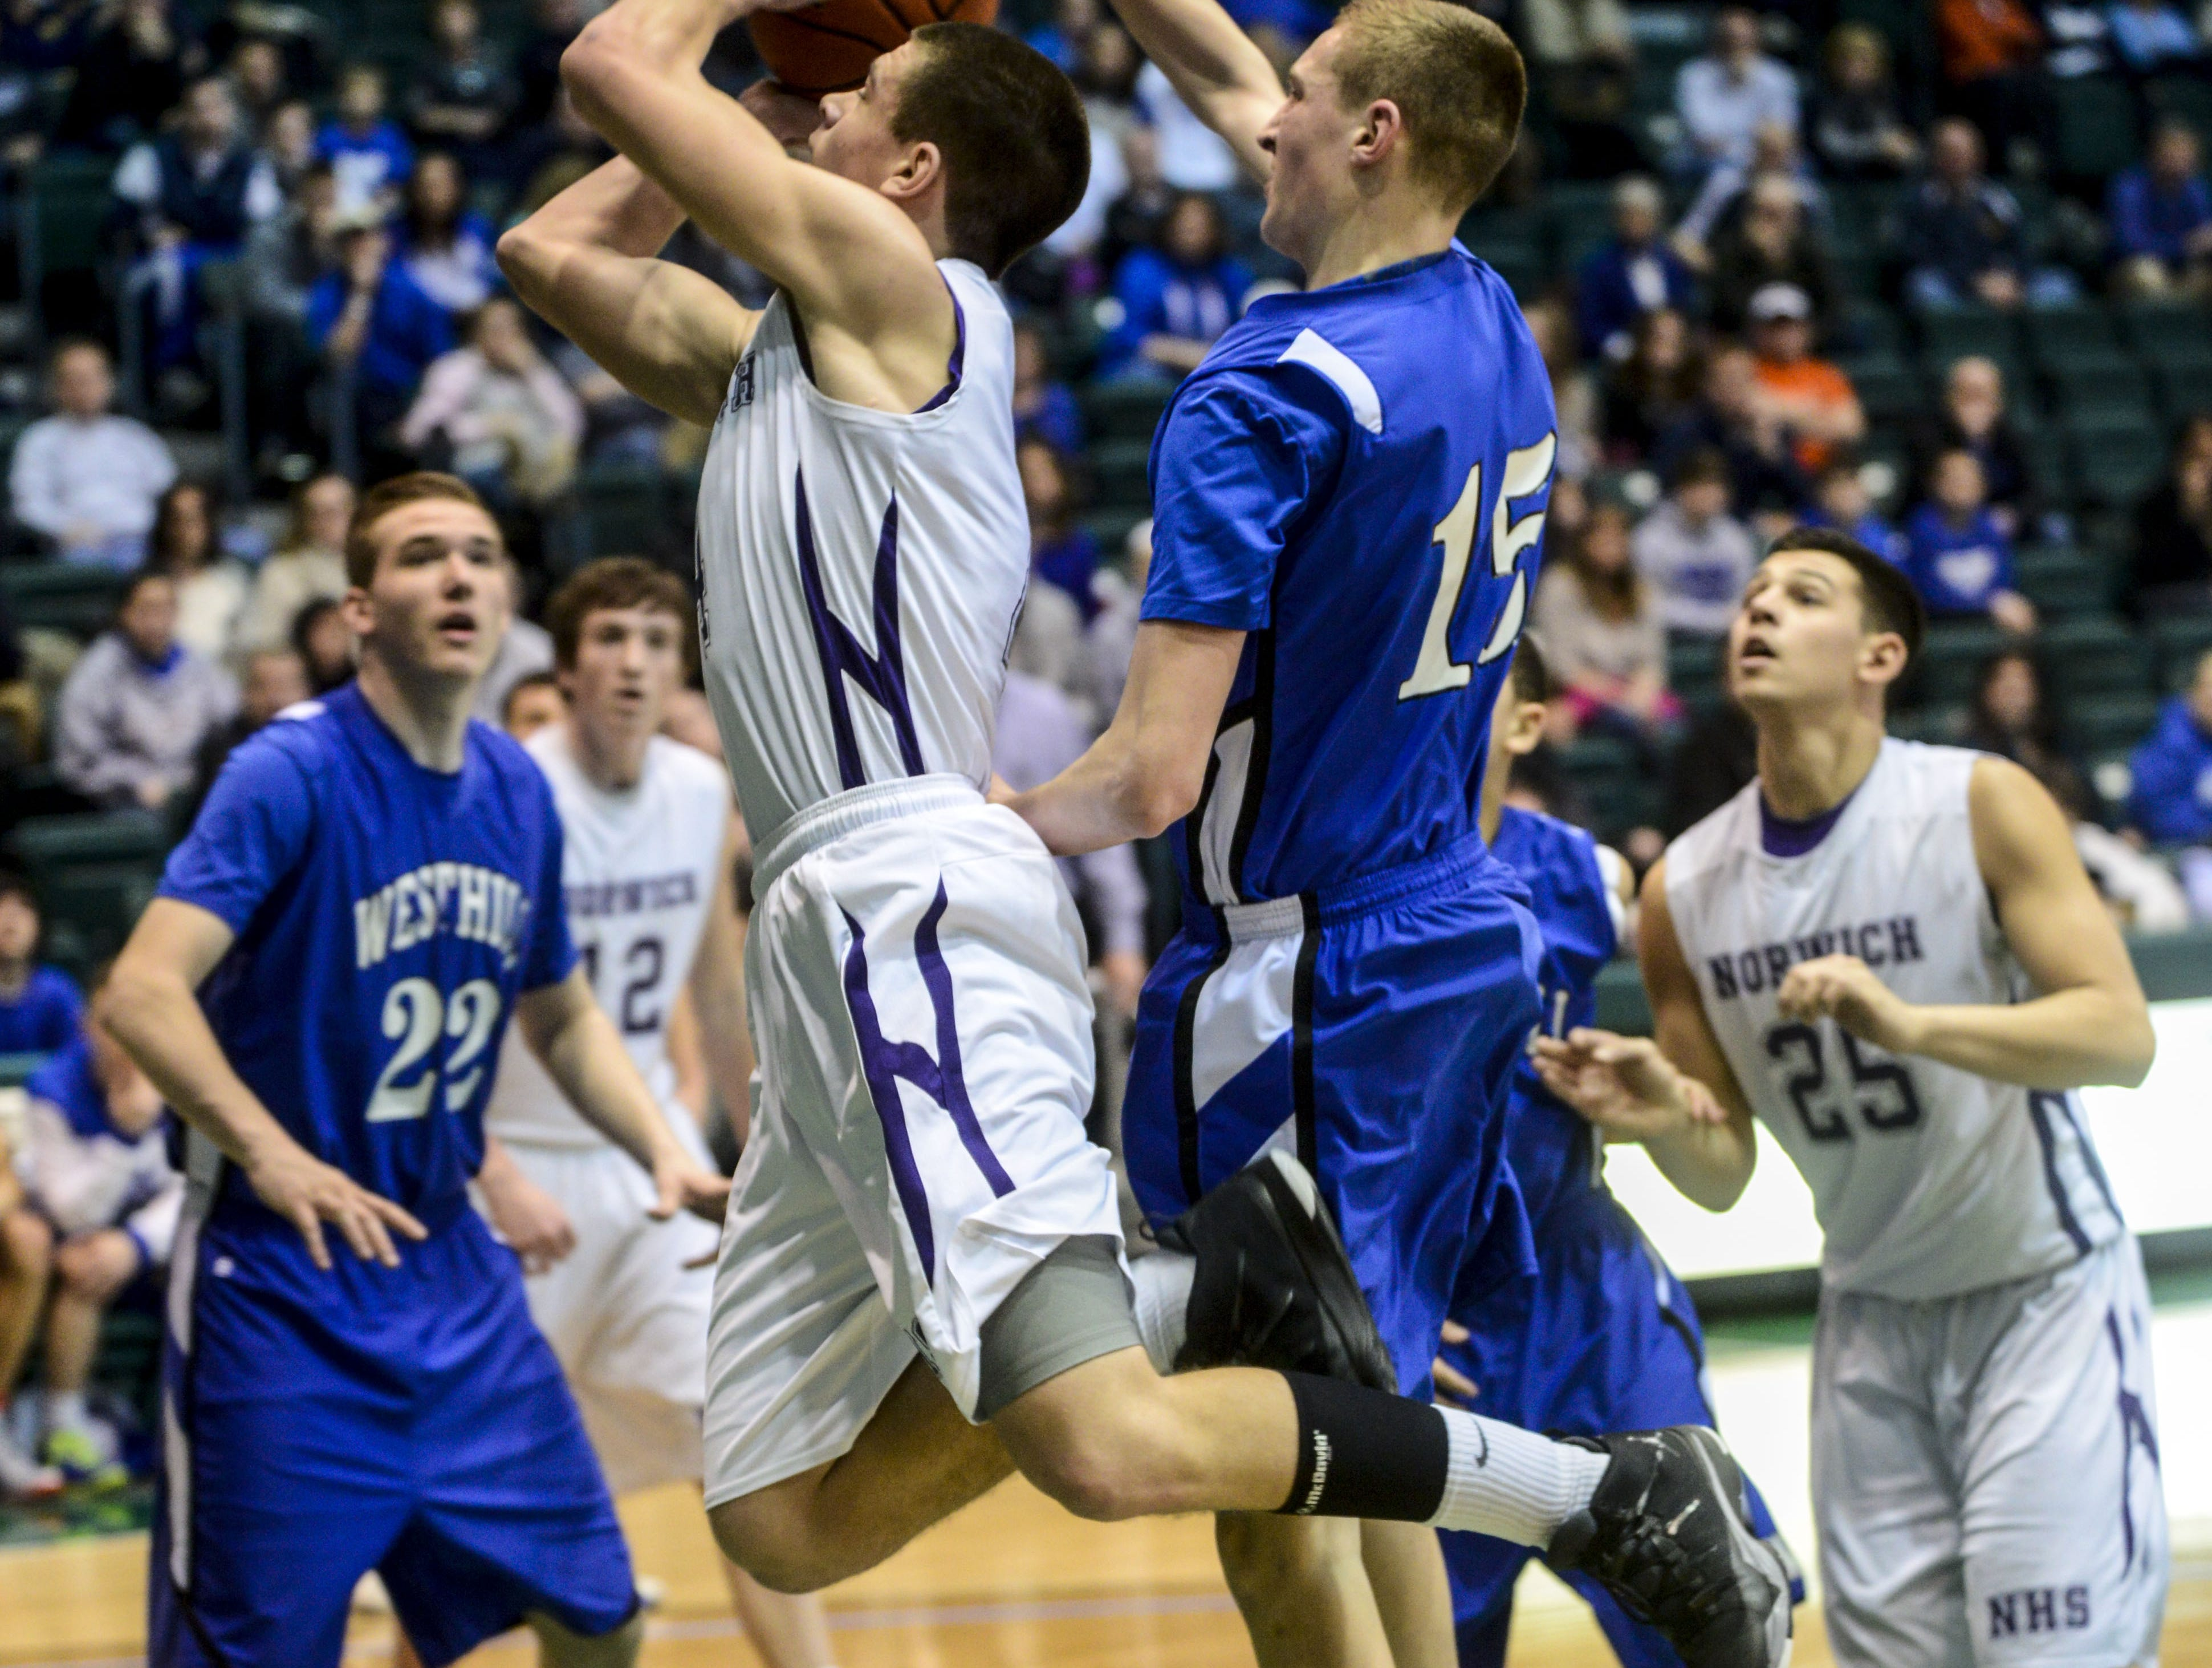 2014: Norwich's Michael Sutton gets the ball stripped away by Westhill's Dan O'Connell in the Class B state quarterfinal Saturday at the Events Center. Sutton finished with 28 points, but Westhill won, 56-53, in overtime.